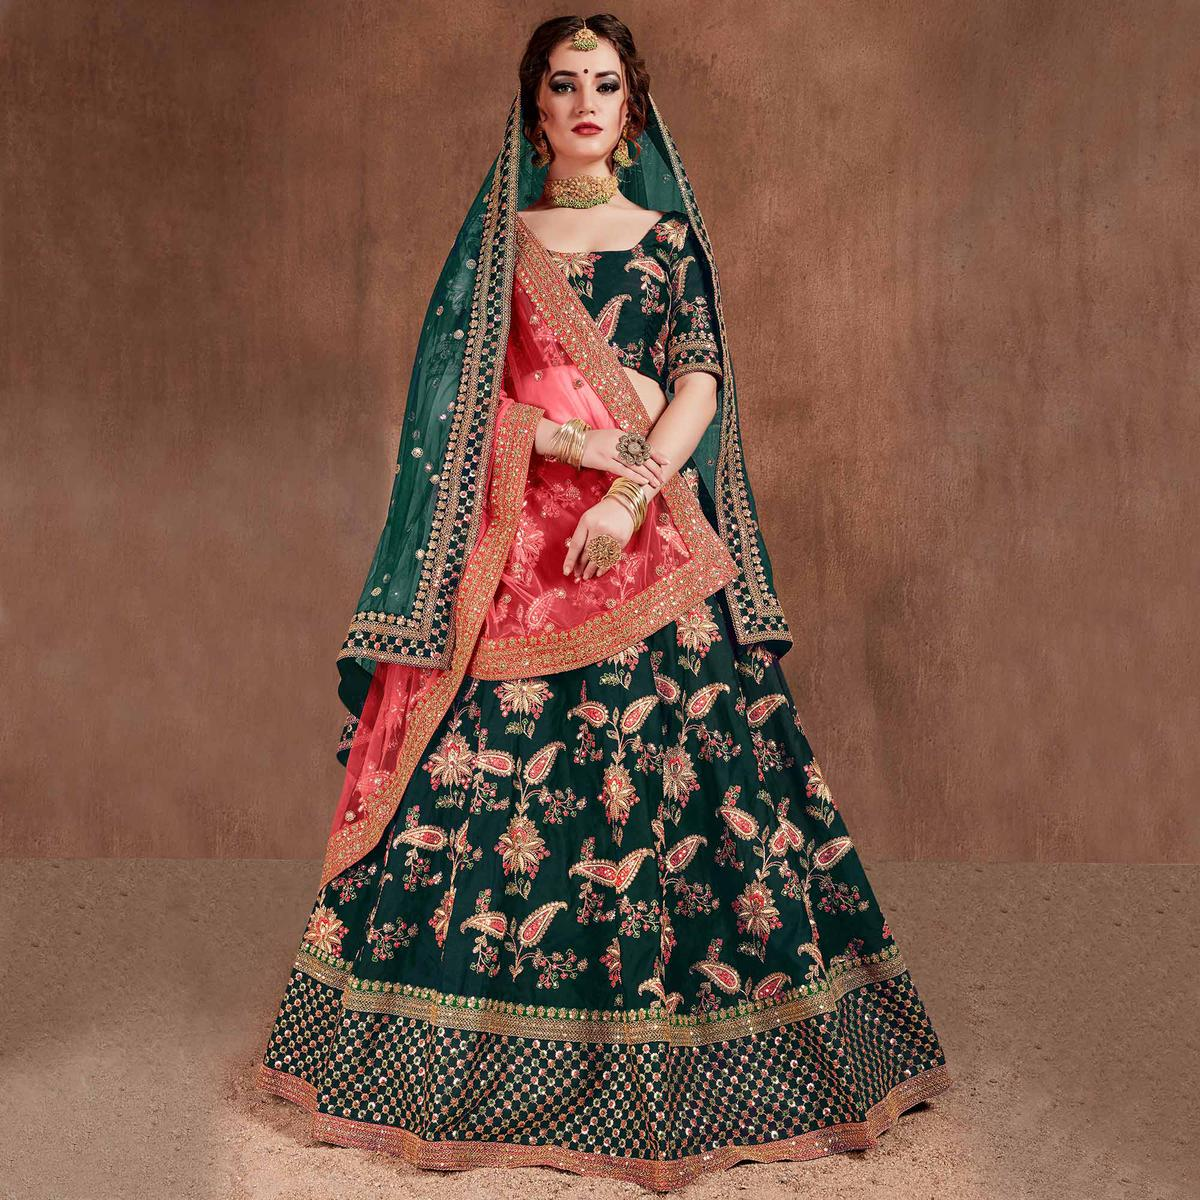 Buy Flamboyant Green Colored Wedding Wear Embroidered Tapeta Silk Lehenga Choli For Women S Wear Online India Best Prices Affordable Prices Best Price Online Reviews Peachmode,Jewel Top Wedding Dress